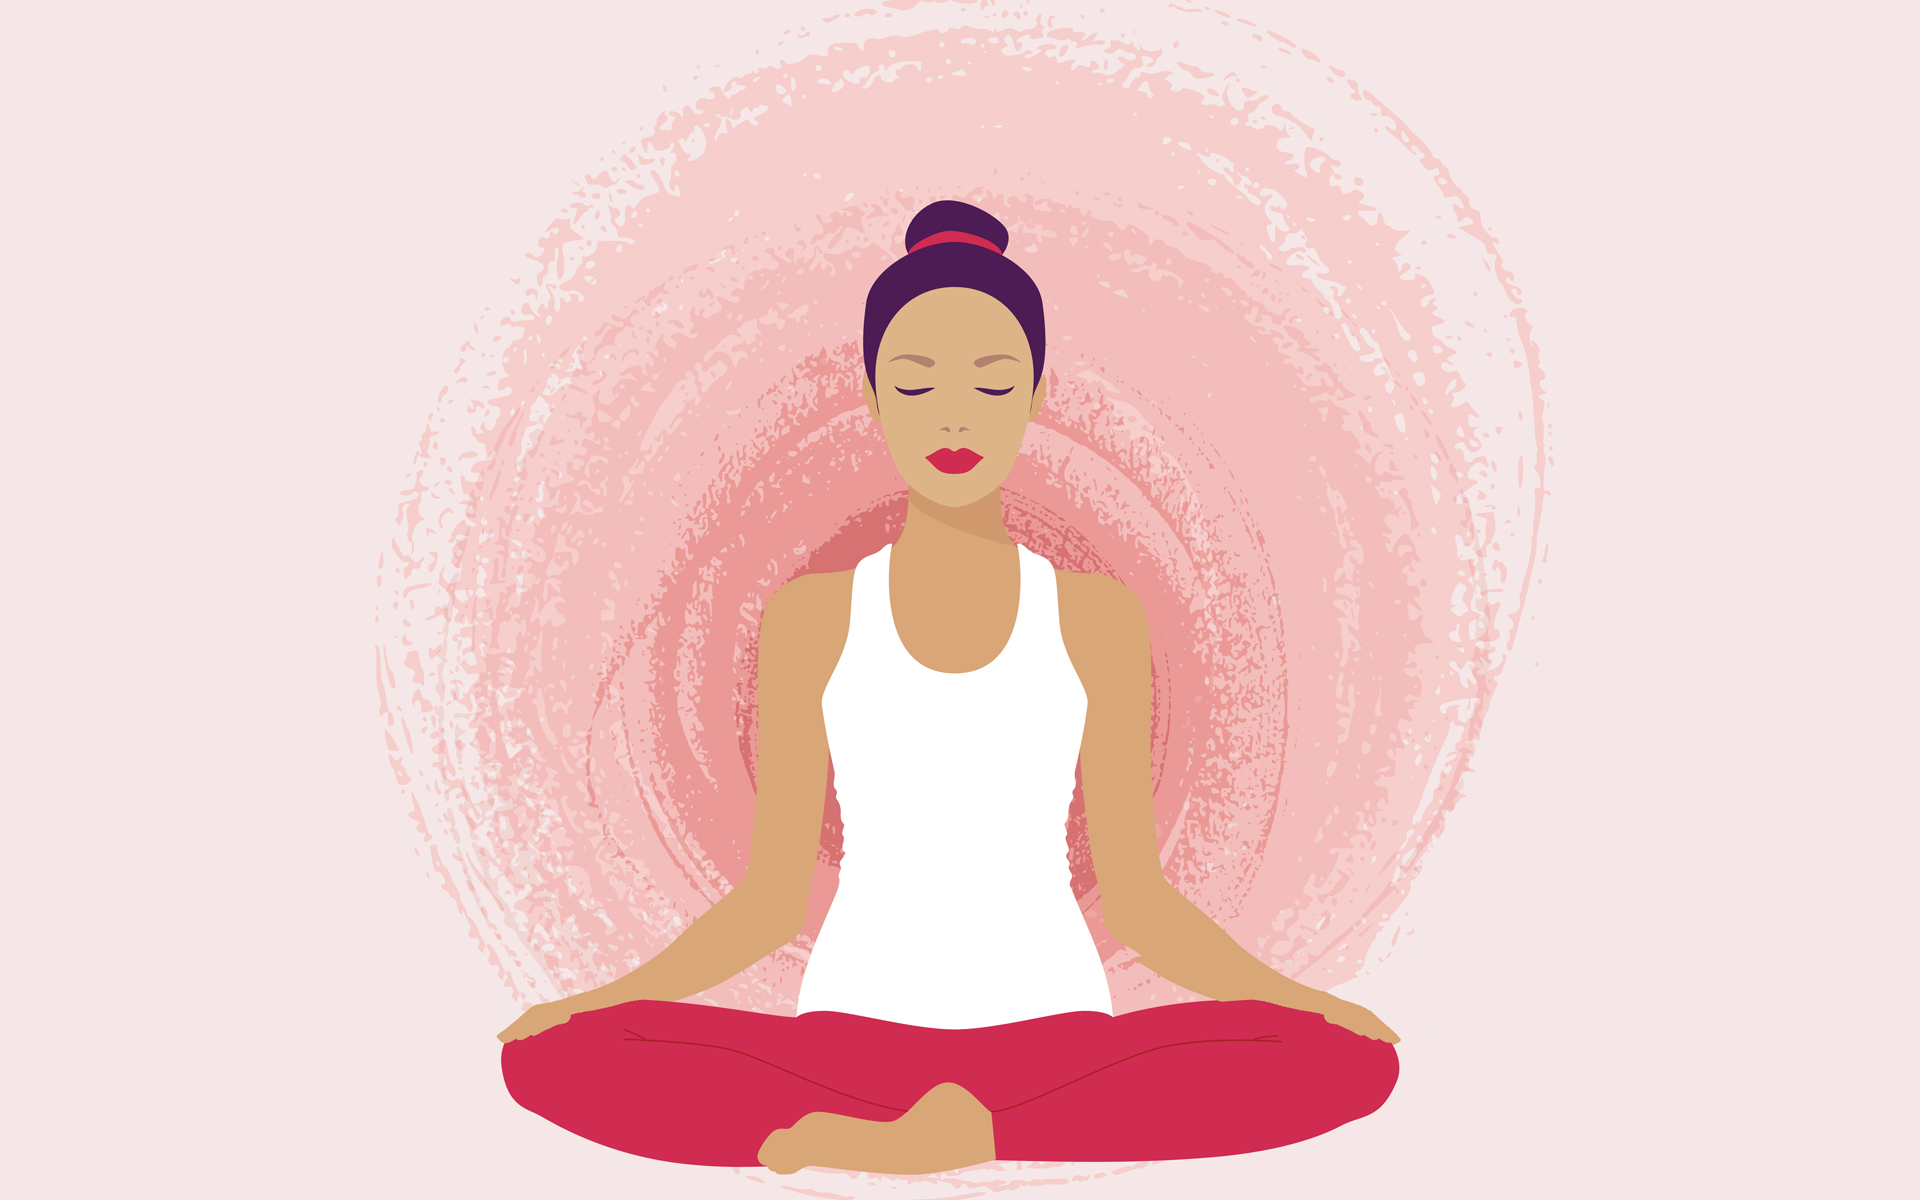 illustration of woman in seated meditation pose